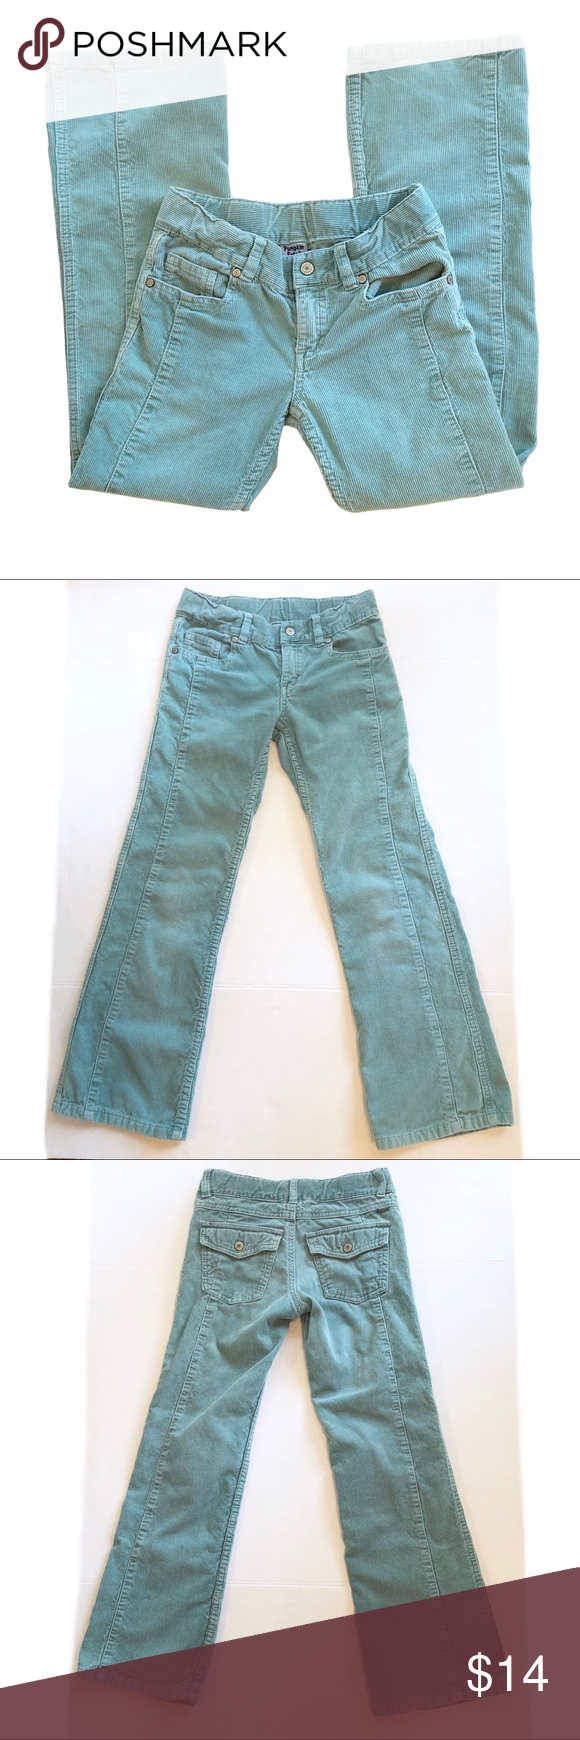 Sz.9 Pumpkin Patch Teal Corduroy Pants Pumpkin Patch teal corduroy pants. Girls size 9, adjustable. Cute design, see all photos. GUC: no rips or holes. One tiny mark on pant leg, pictured. Normal wash wear. pumpkin patch Bottoms #pumpkinpatchoutfit